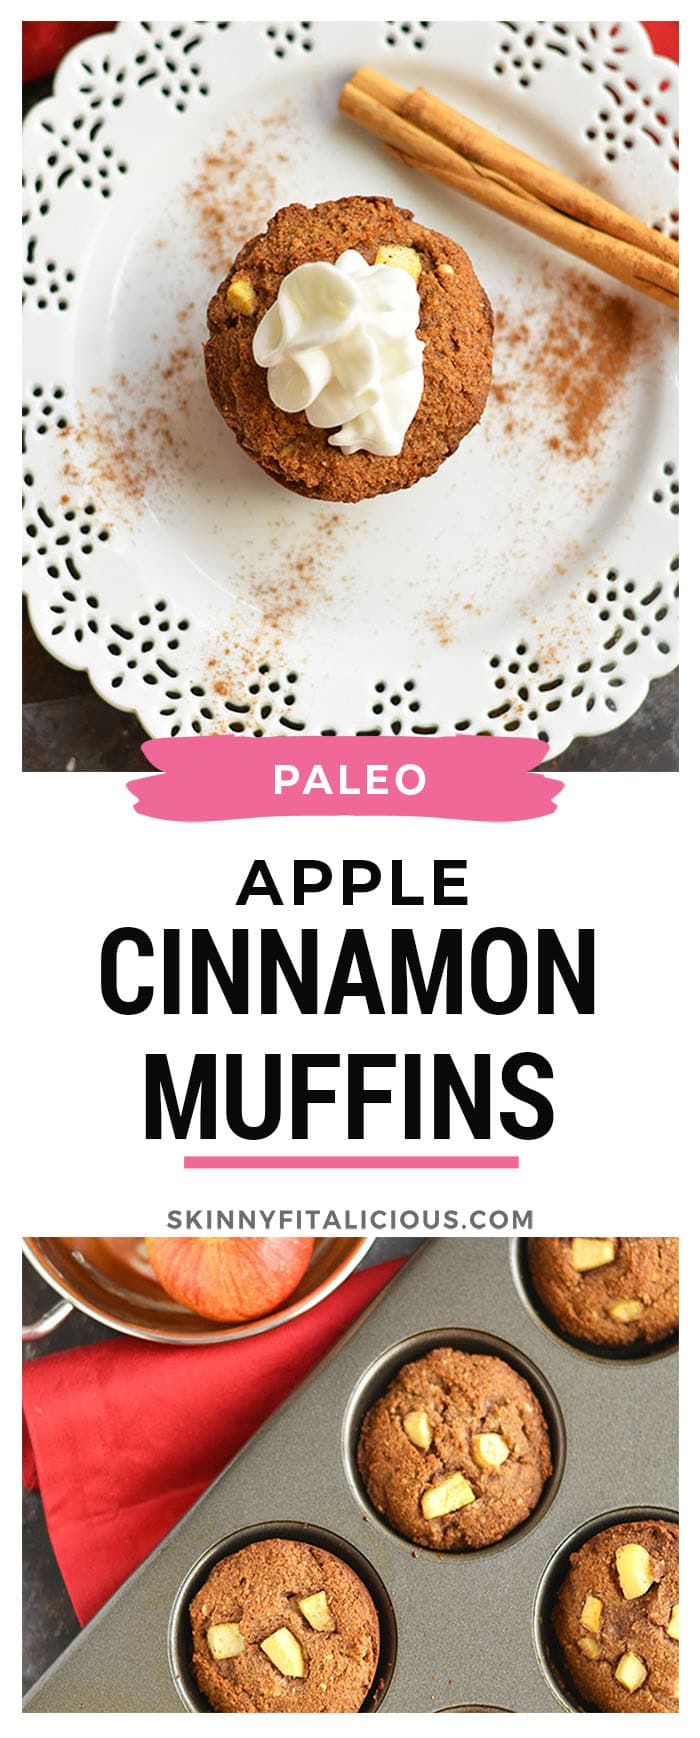 Warm Paleo Apple Cinnamon Muffins bursting with natural sweetness! Made with almond flour, these muffins are thick, hearty & make the perfect single-serve dessert or snack!